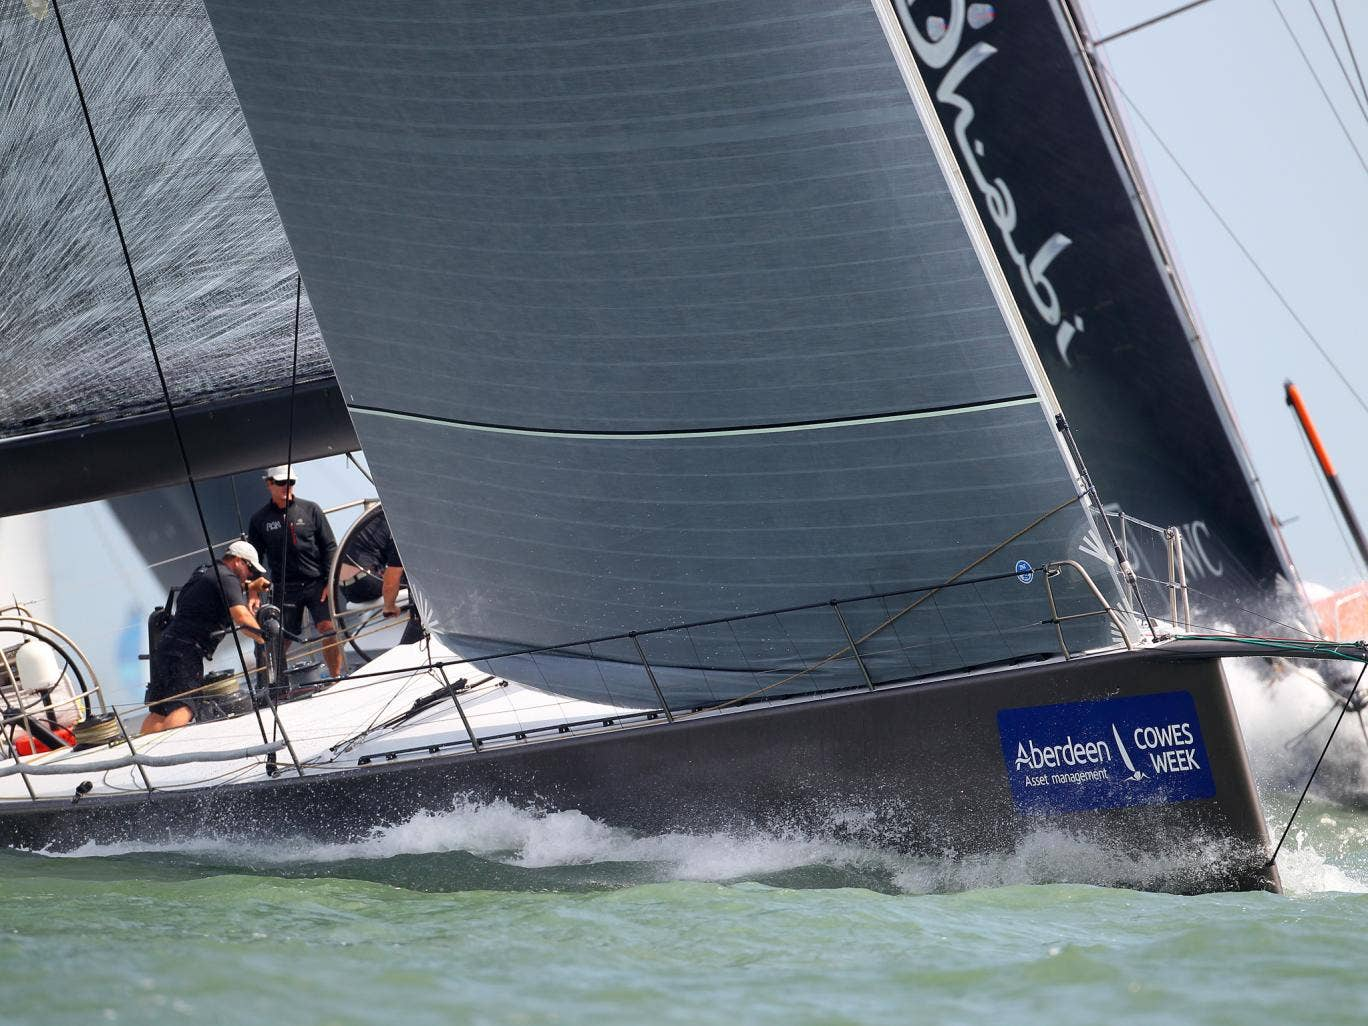 Niklas Zennstrôm's 72-foot Rán added to its impressive haul of silverware to take the Buckingham Coronation Challenge Bowl in AAM Cowes Week